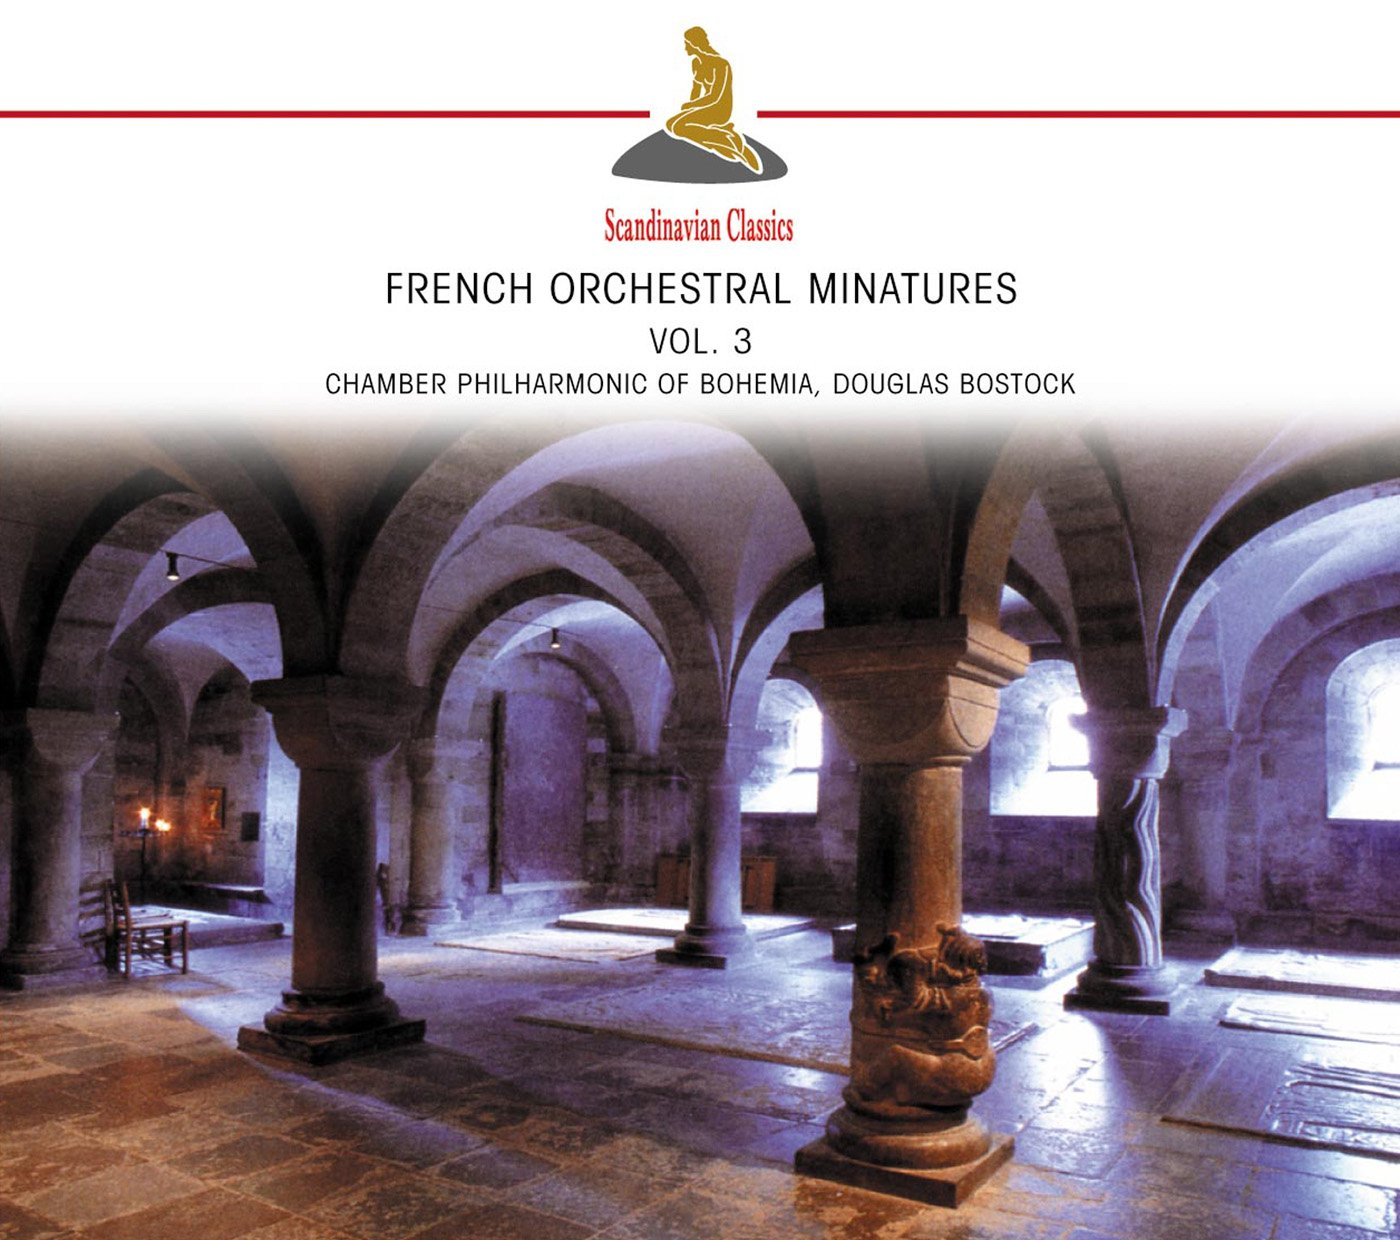 French Orchestral Miniatures 3 by Scandinavian Classics